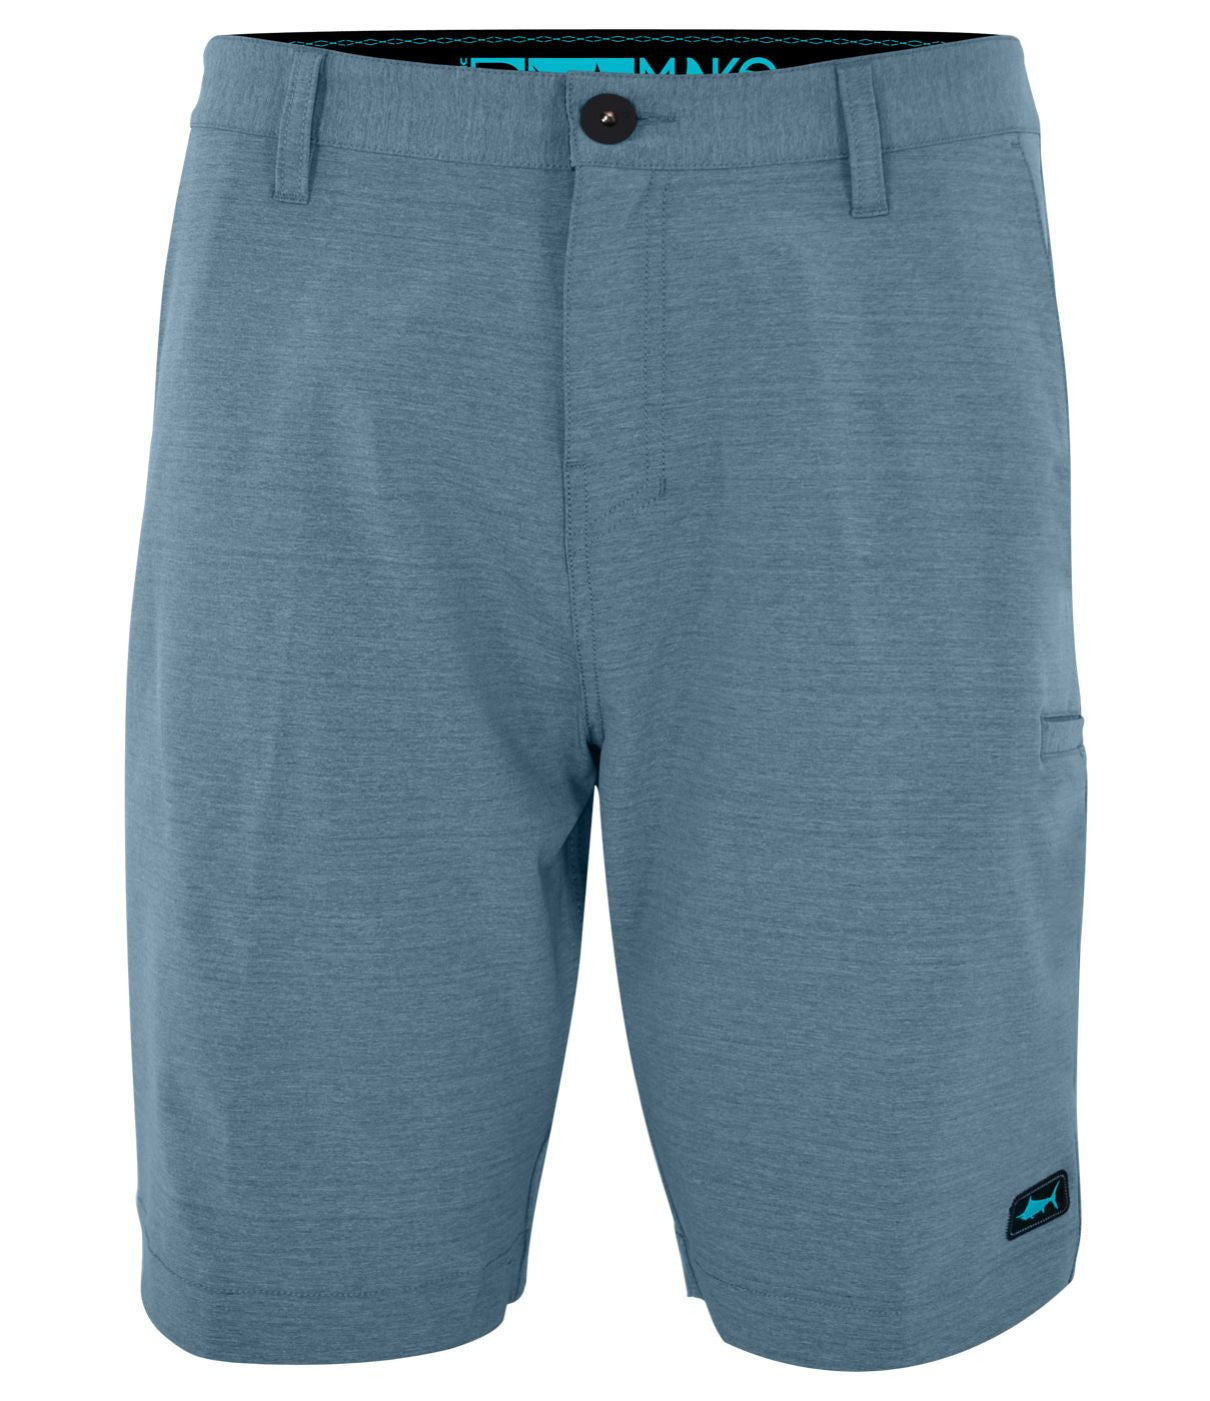 Pelagic Mako Hybrid - Short